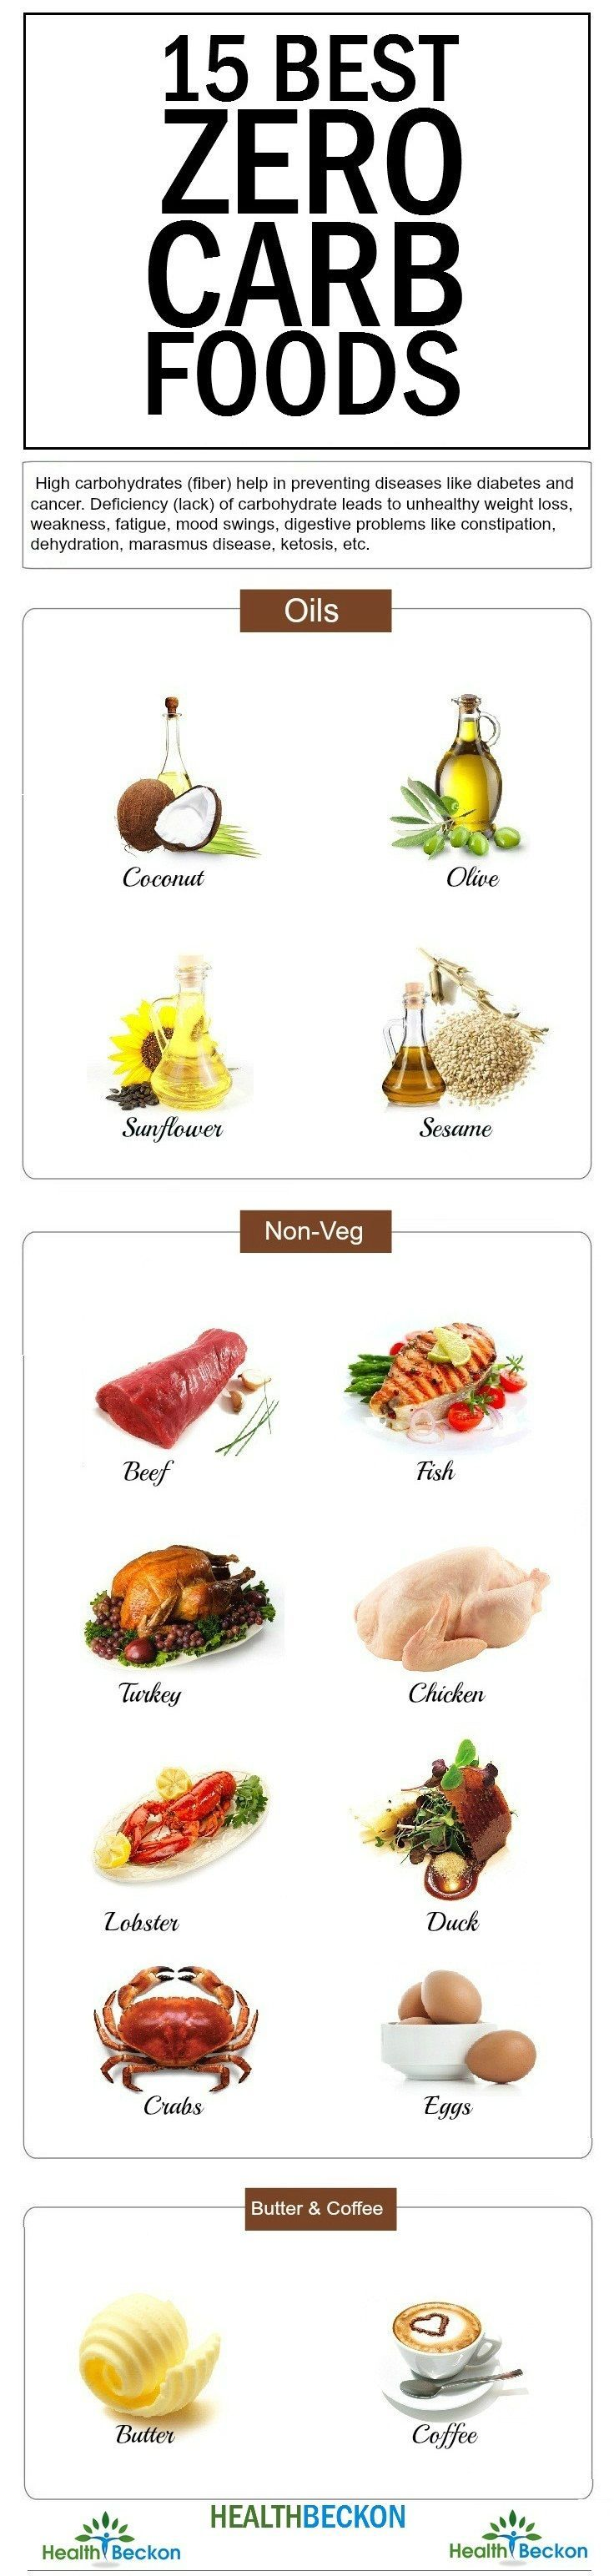 "Zero Carb Diet 15 Best Zero Carb Foods List ""As the name suggests, the zero carb diet incorporates zero carb foods. Given ... are 15 such zero carb foods that should be consumed while following this ketogenic diet."""